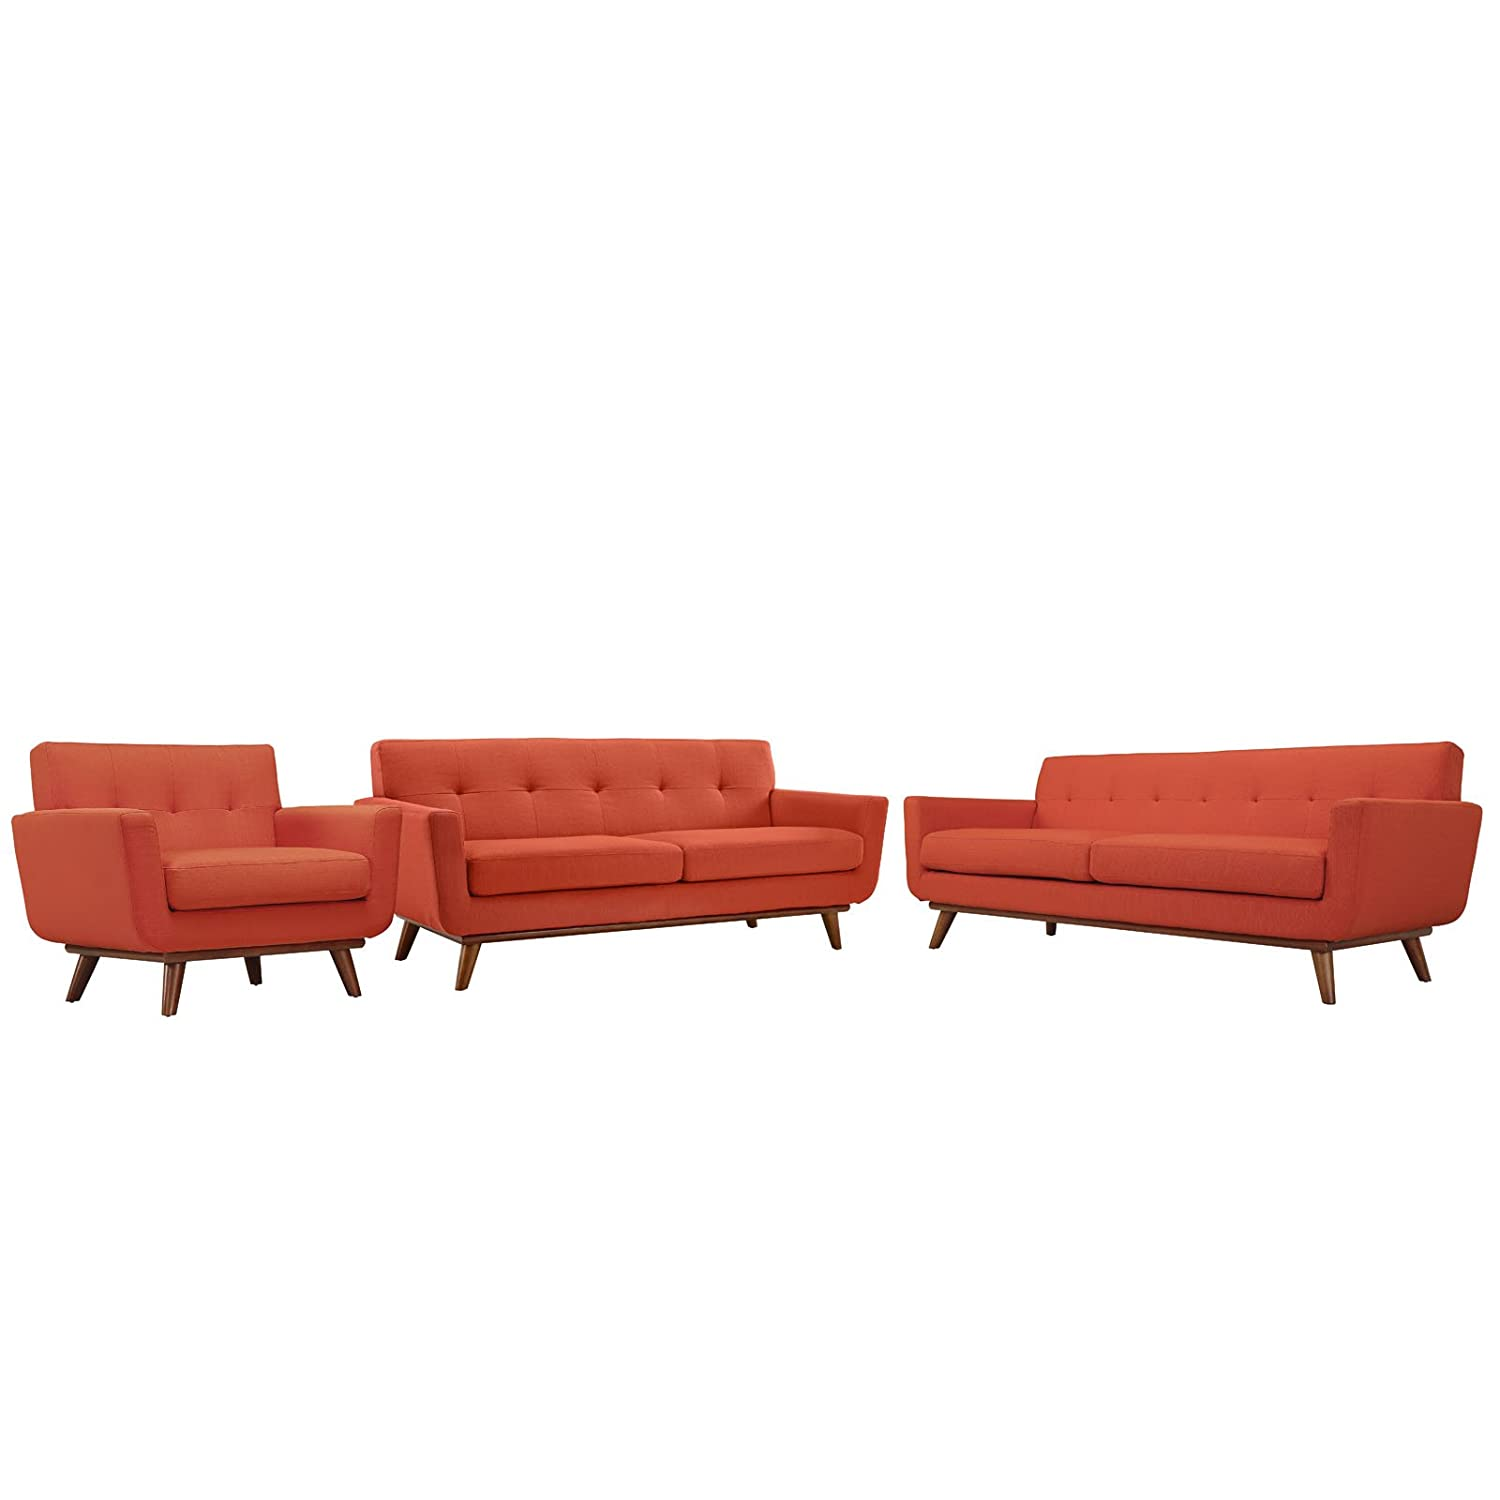 Modern Contemporary Sofa Loveseat and Armchair (set of three) - Red Fabric